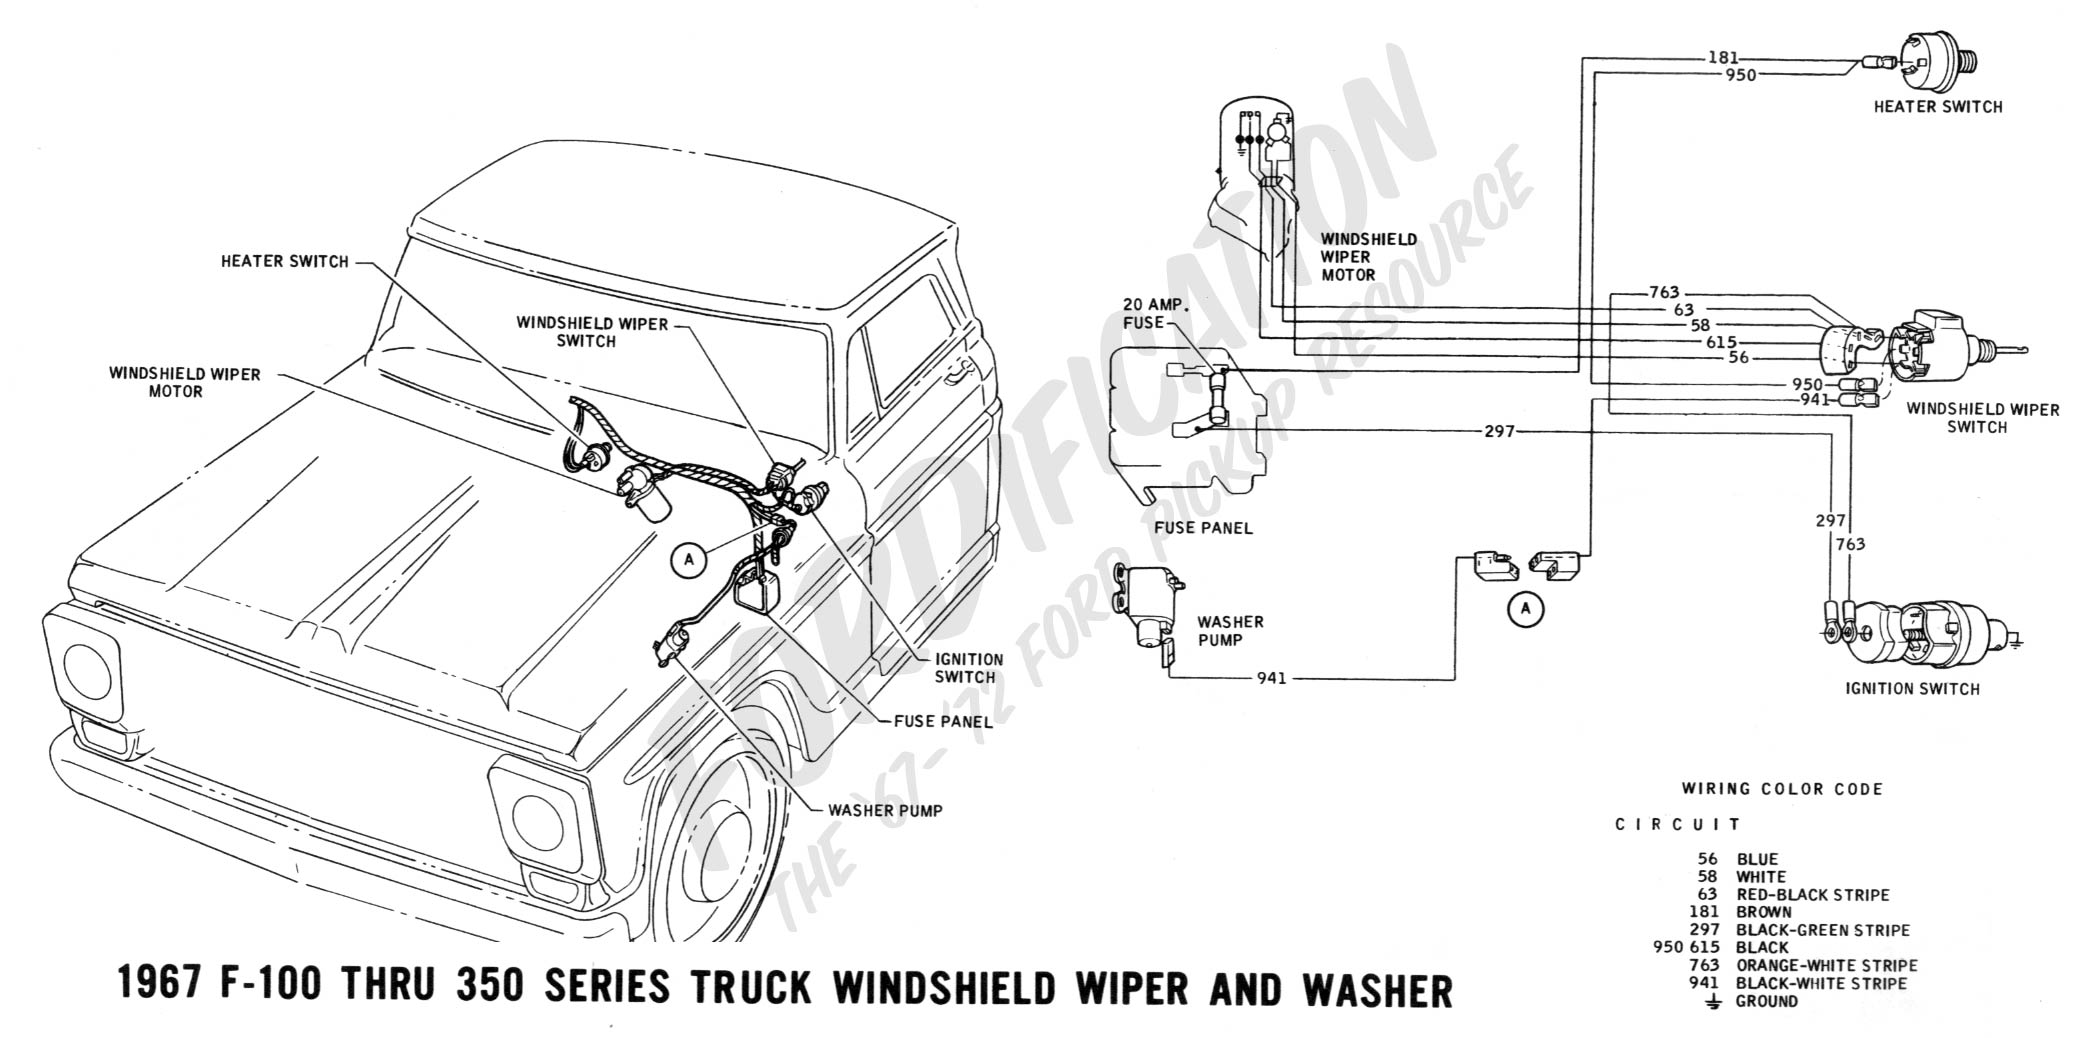 1967 F-100 thru F-350 windshield wiper and washer